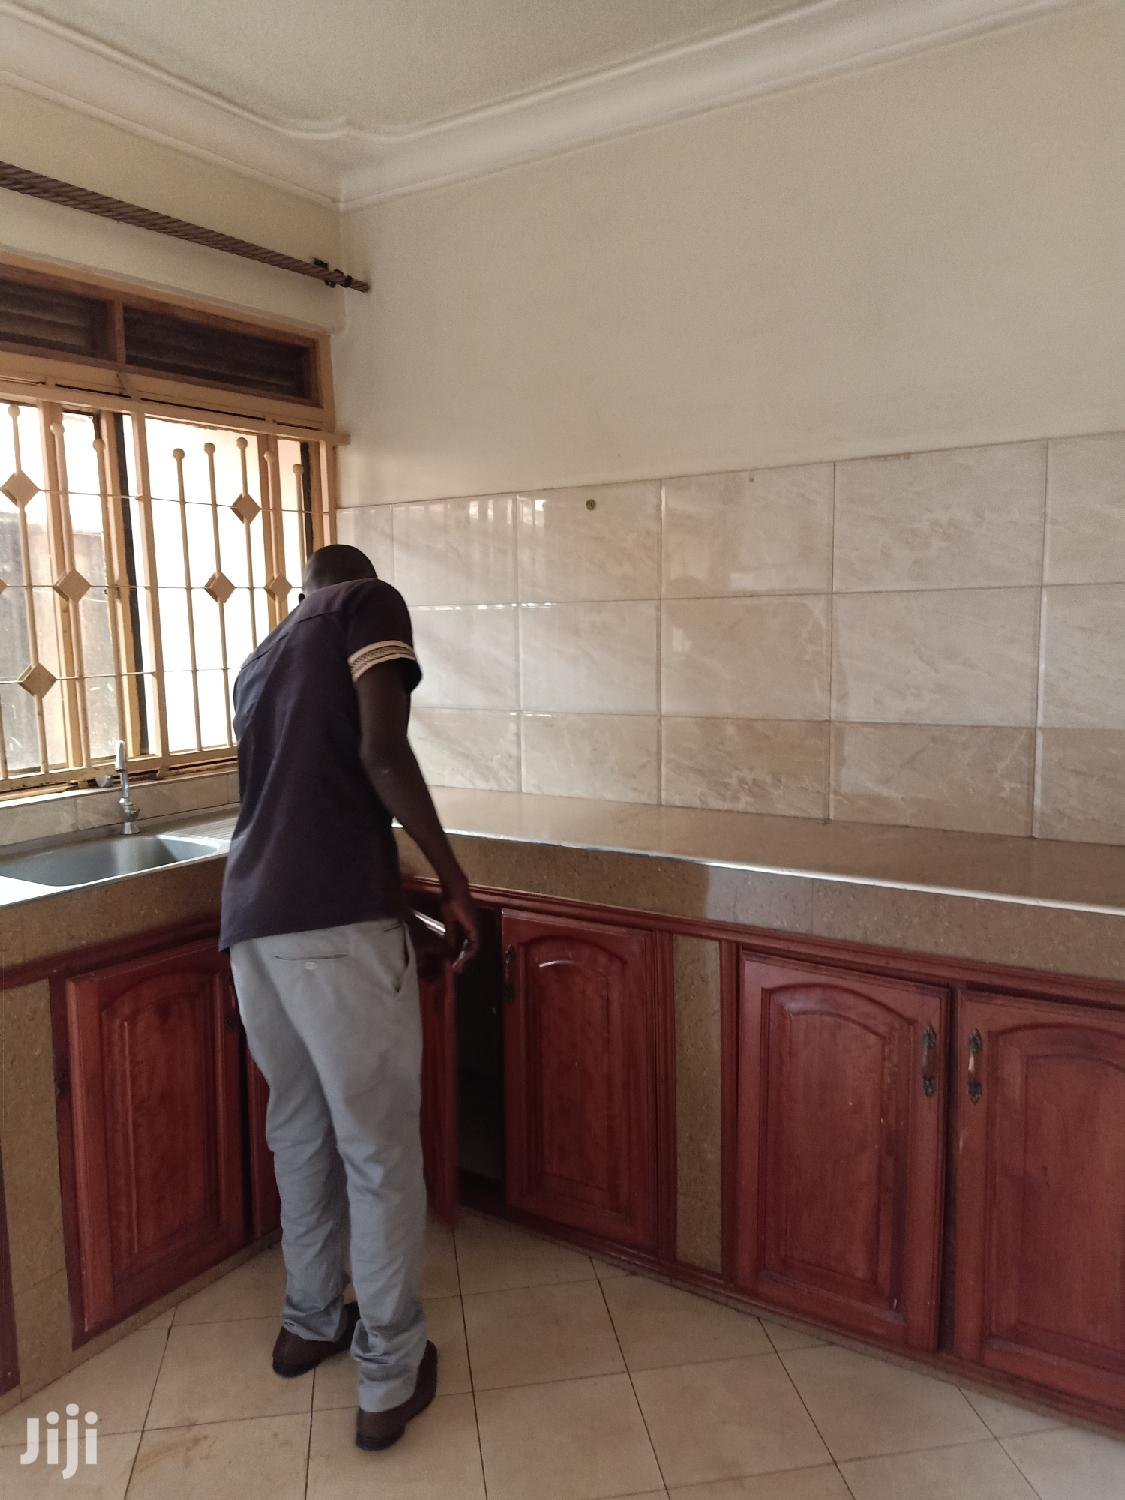 Bweyogerere 2 Bedroom House For Rent | Houses & Apartments For Rent for sale in Kampala, Central Region, Uganda